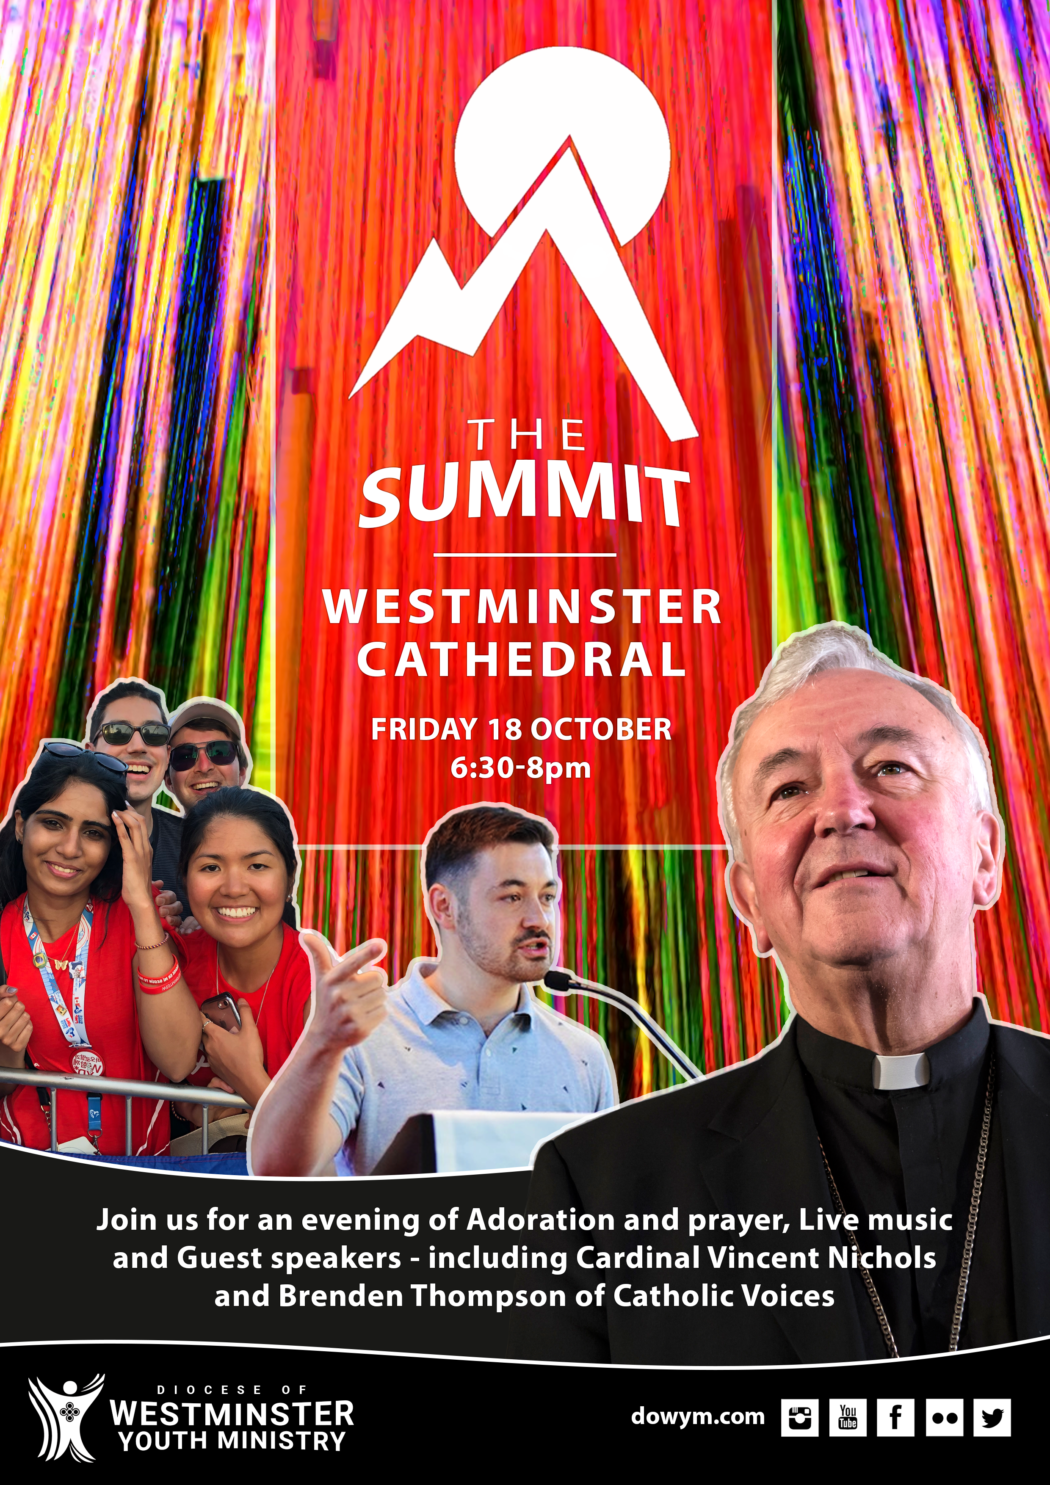 the summit westminster cathedral adoration london